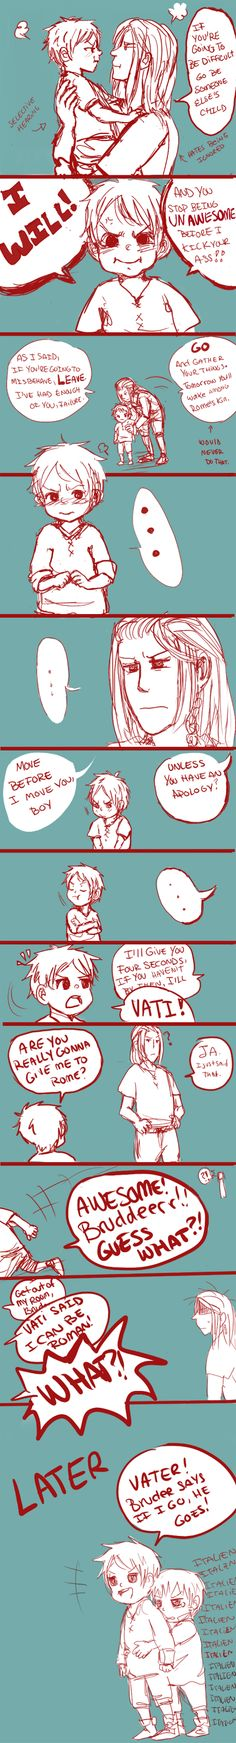 APH: Make good on a threat... by Assby on DeviantArt --- Prussia, Germania and Germany